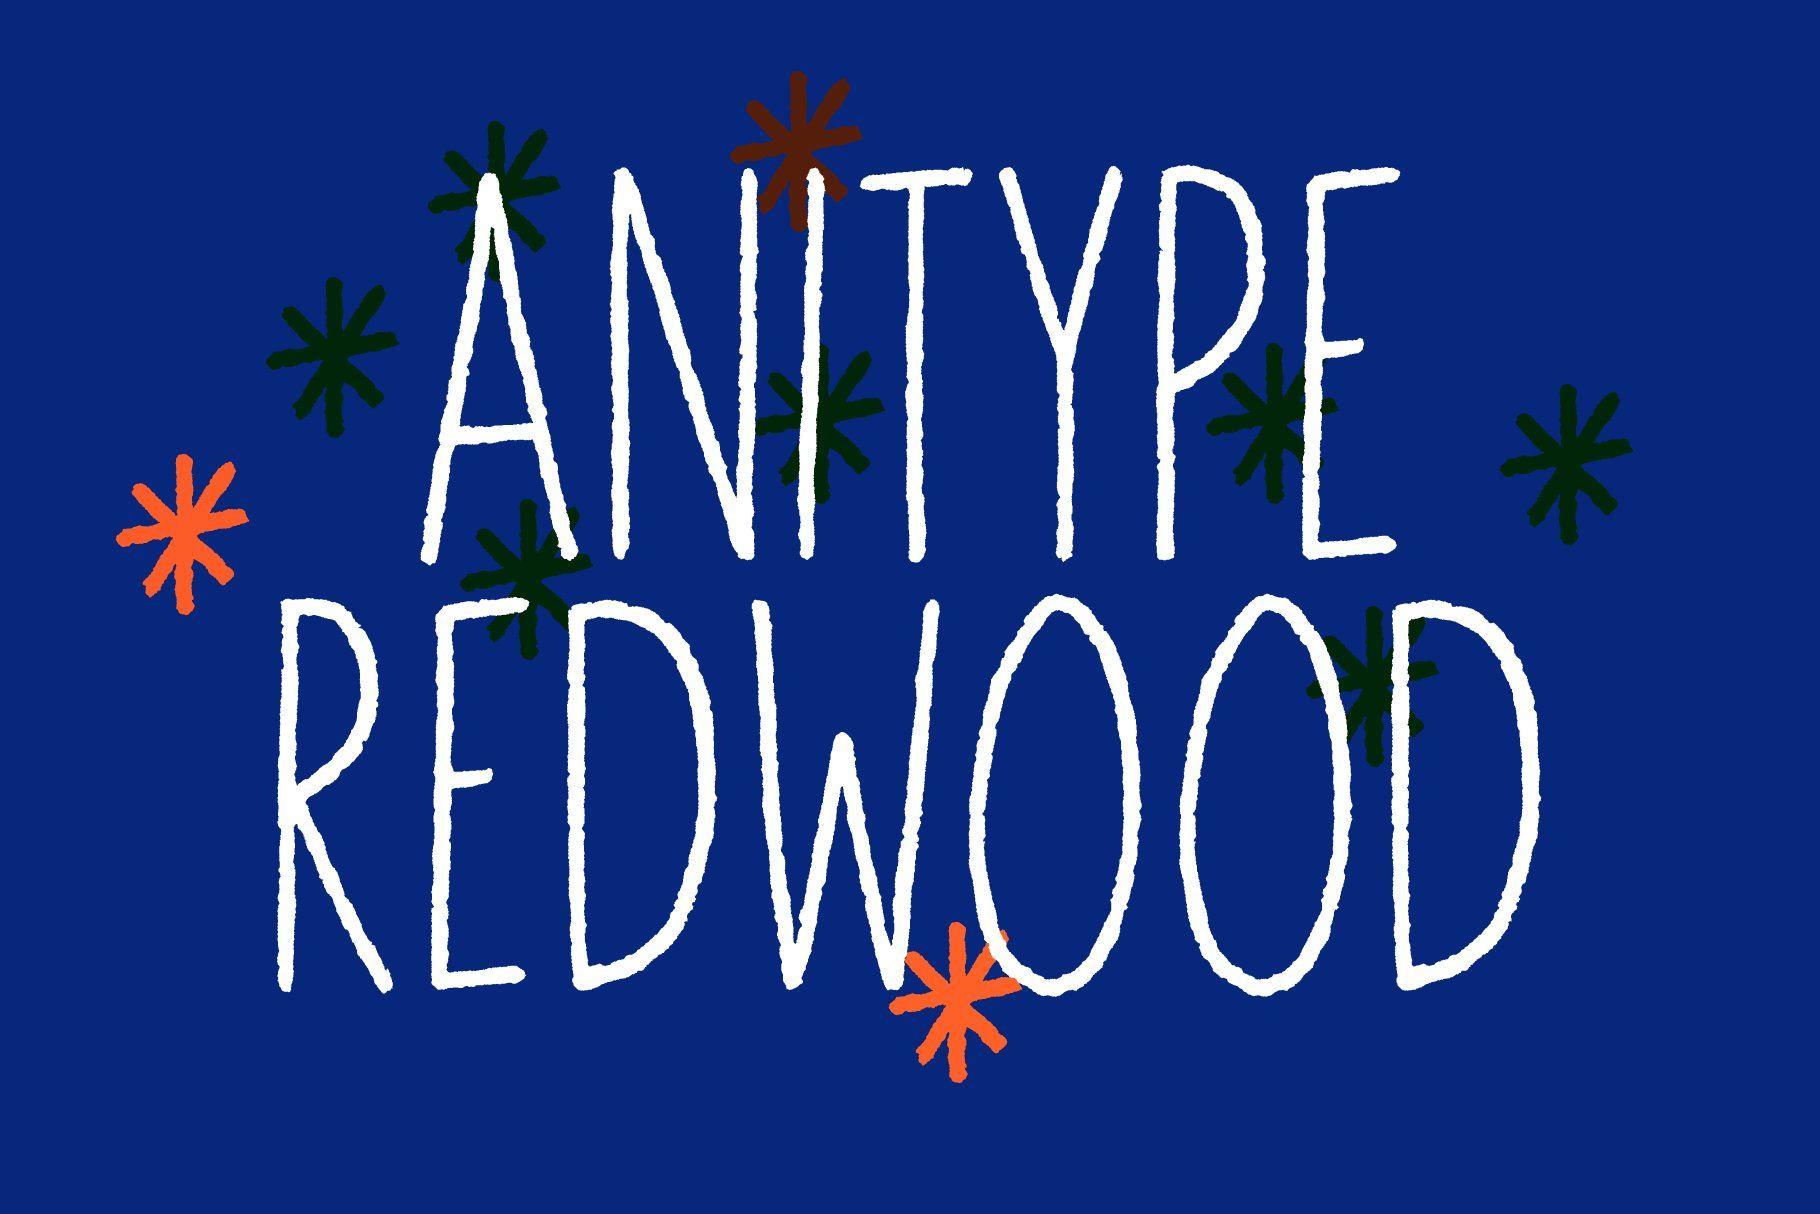 Anitype Redwood Animated Font Animated fonts, Font